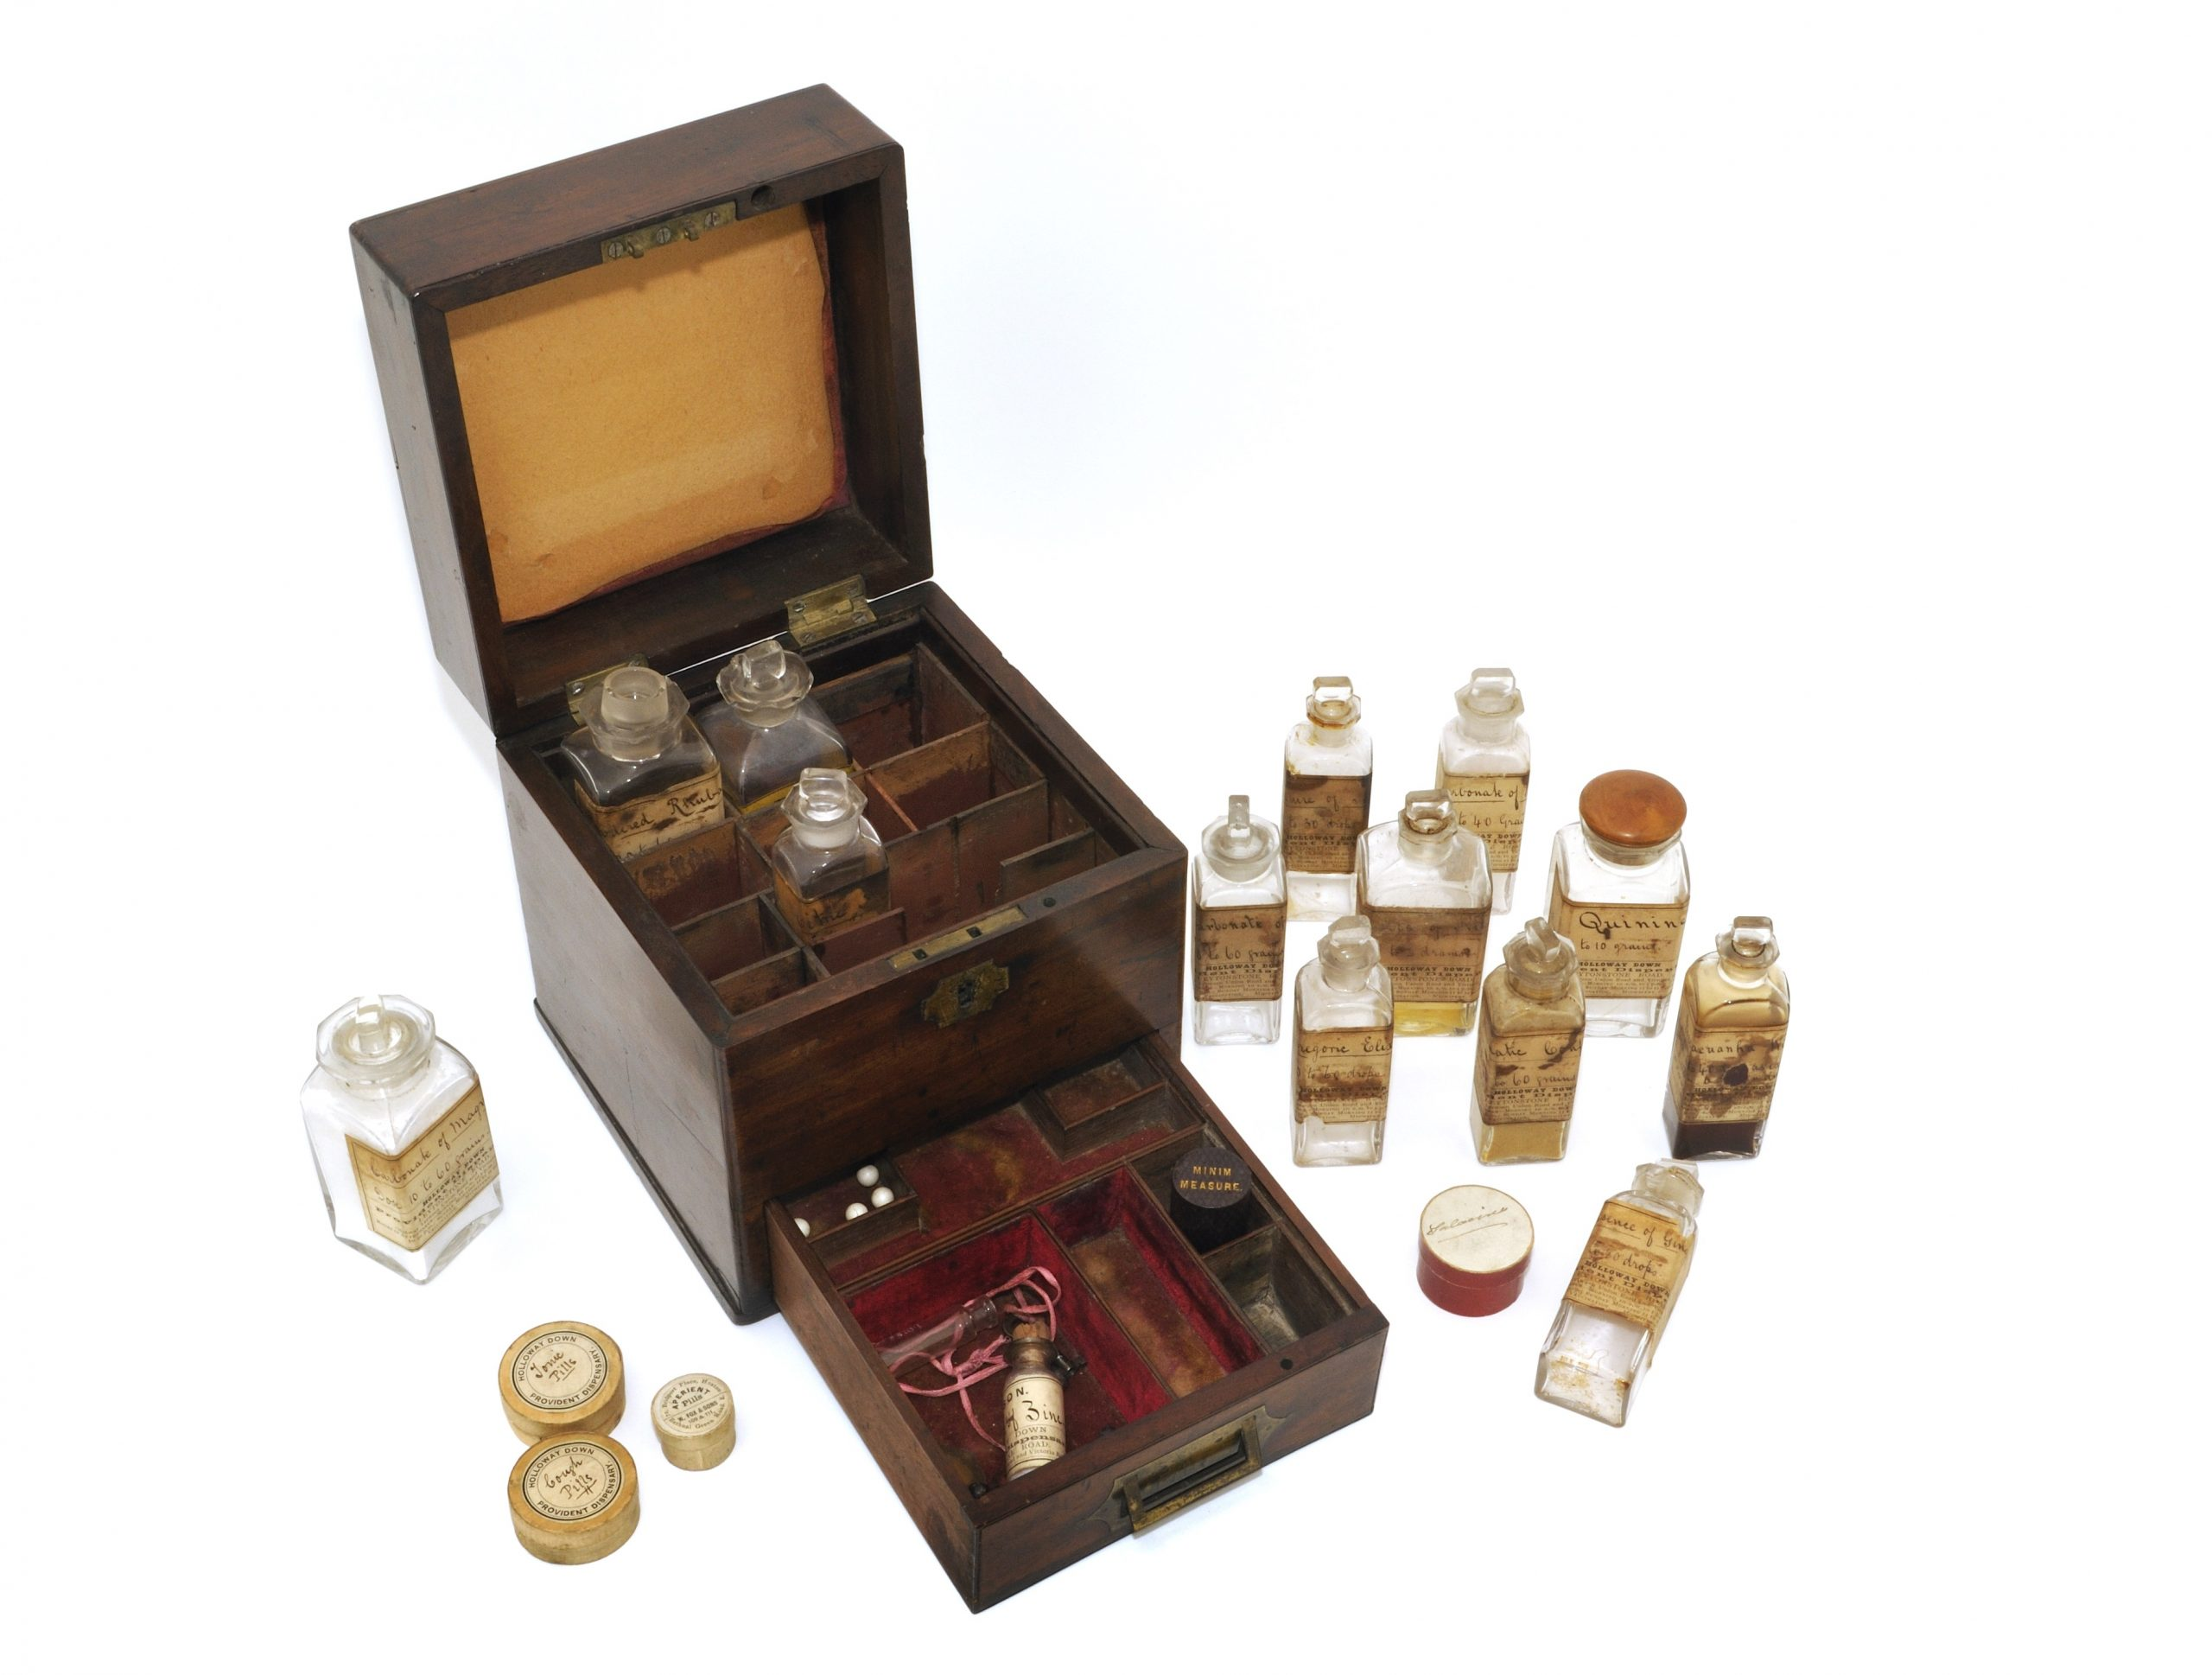 Florence Nightingale's Medicine Chest